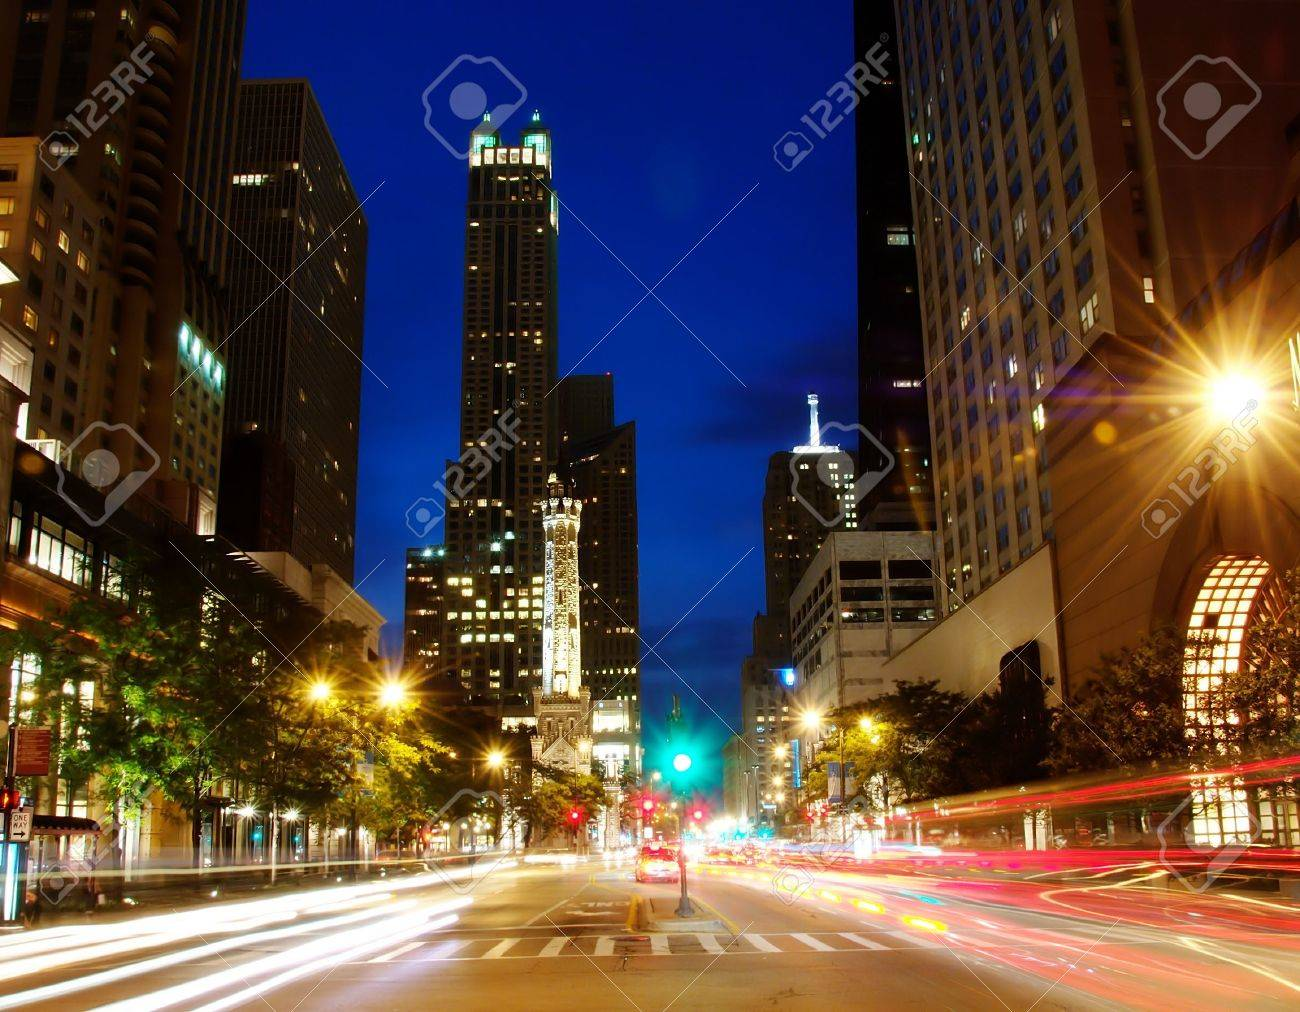 Michigan Ave in downtown Chicago at night. Stock Photo - 2242447